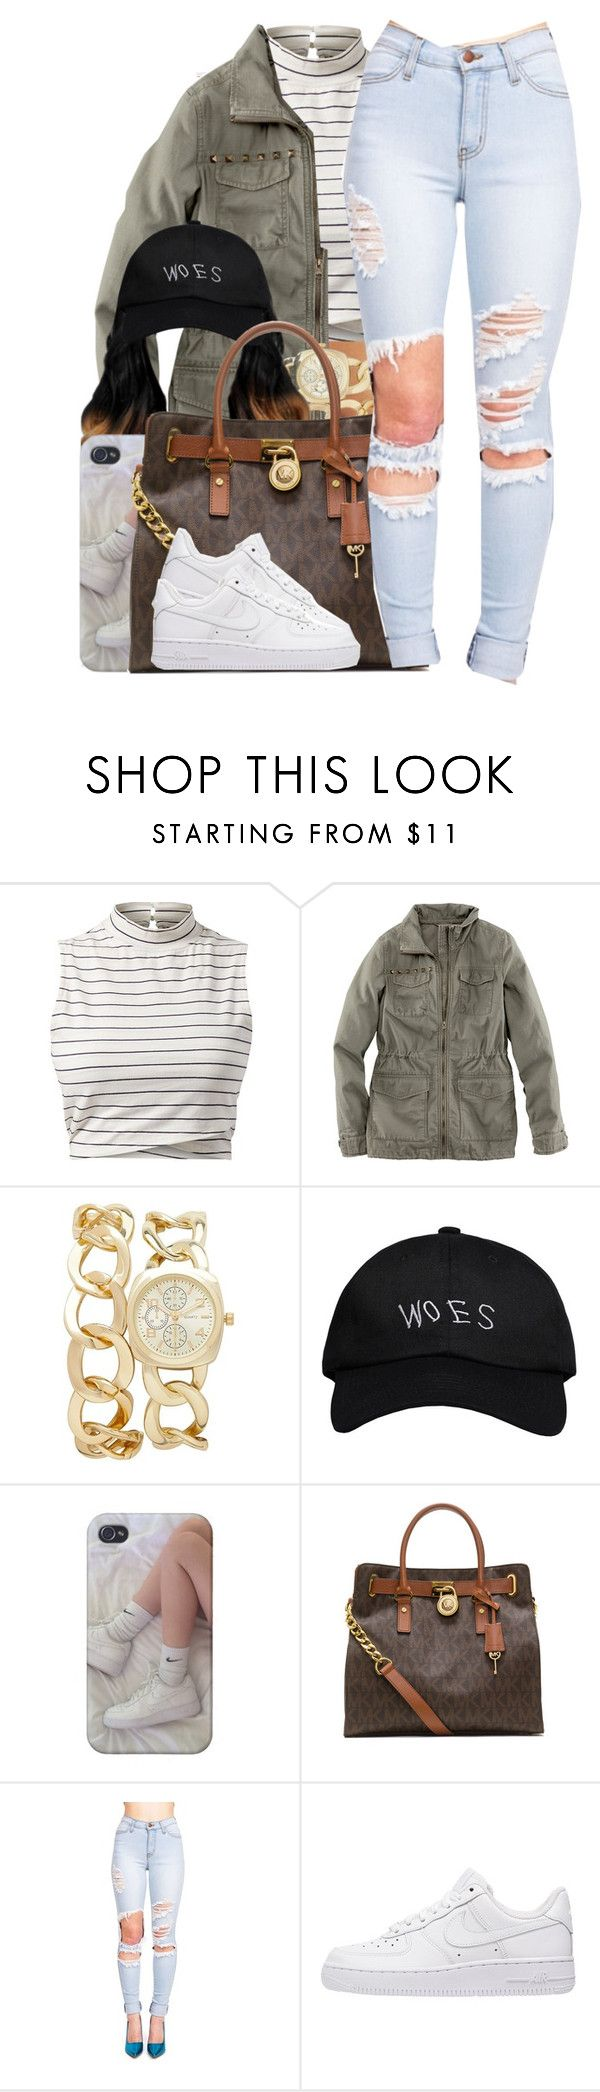 """""""Tory Lanez / Say It"""" by nasiaamiraaa ❤ liked on Polyvore featuring H&M, Forever New, October's Very Own, MICHAEL Michael Kors, NIKE and NanaOutfits"""